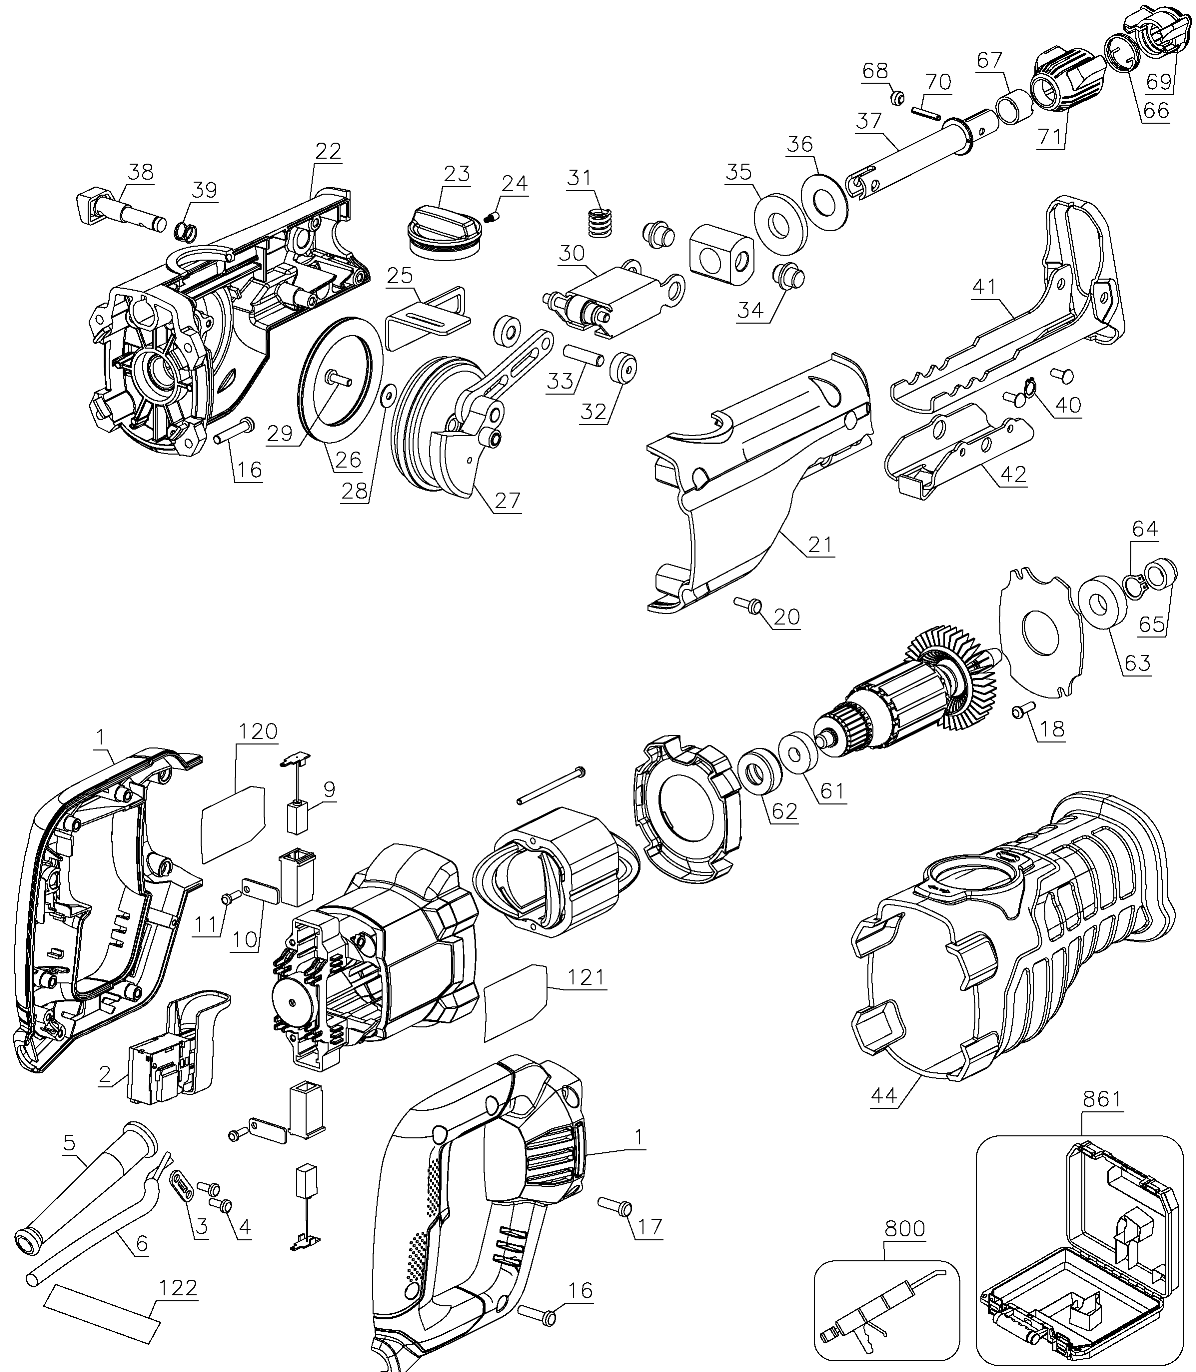 reciprocating saw parts diagram